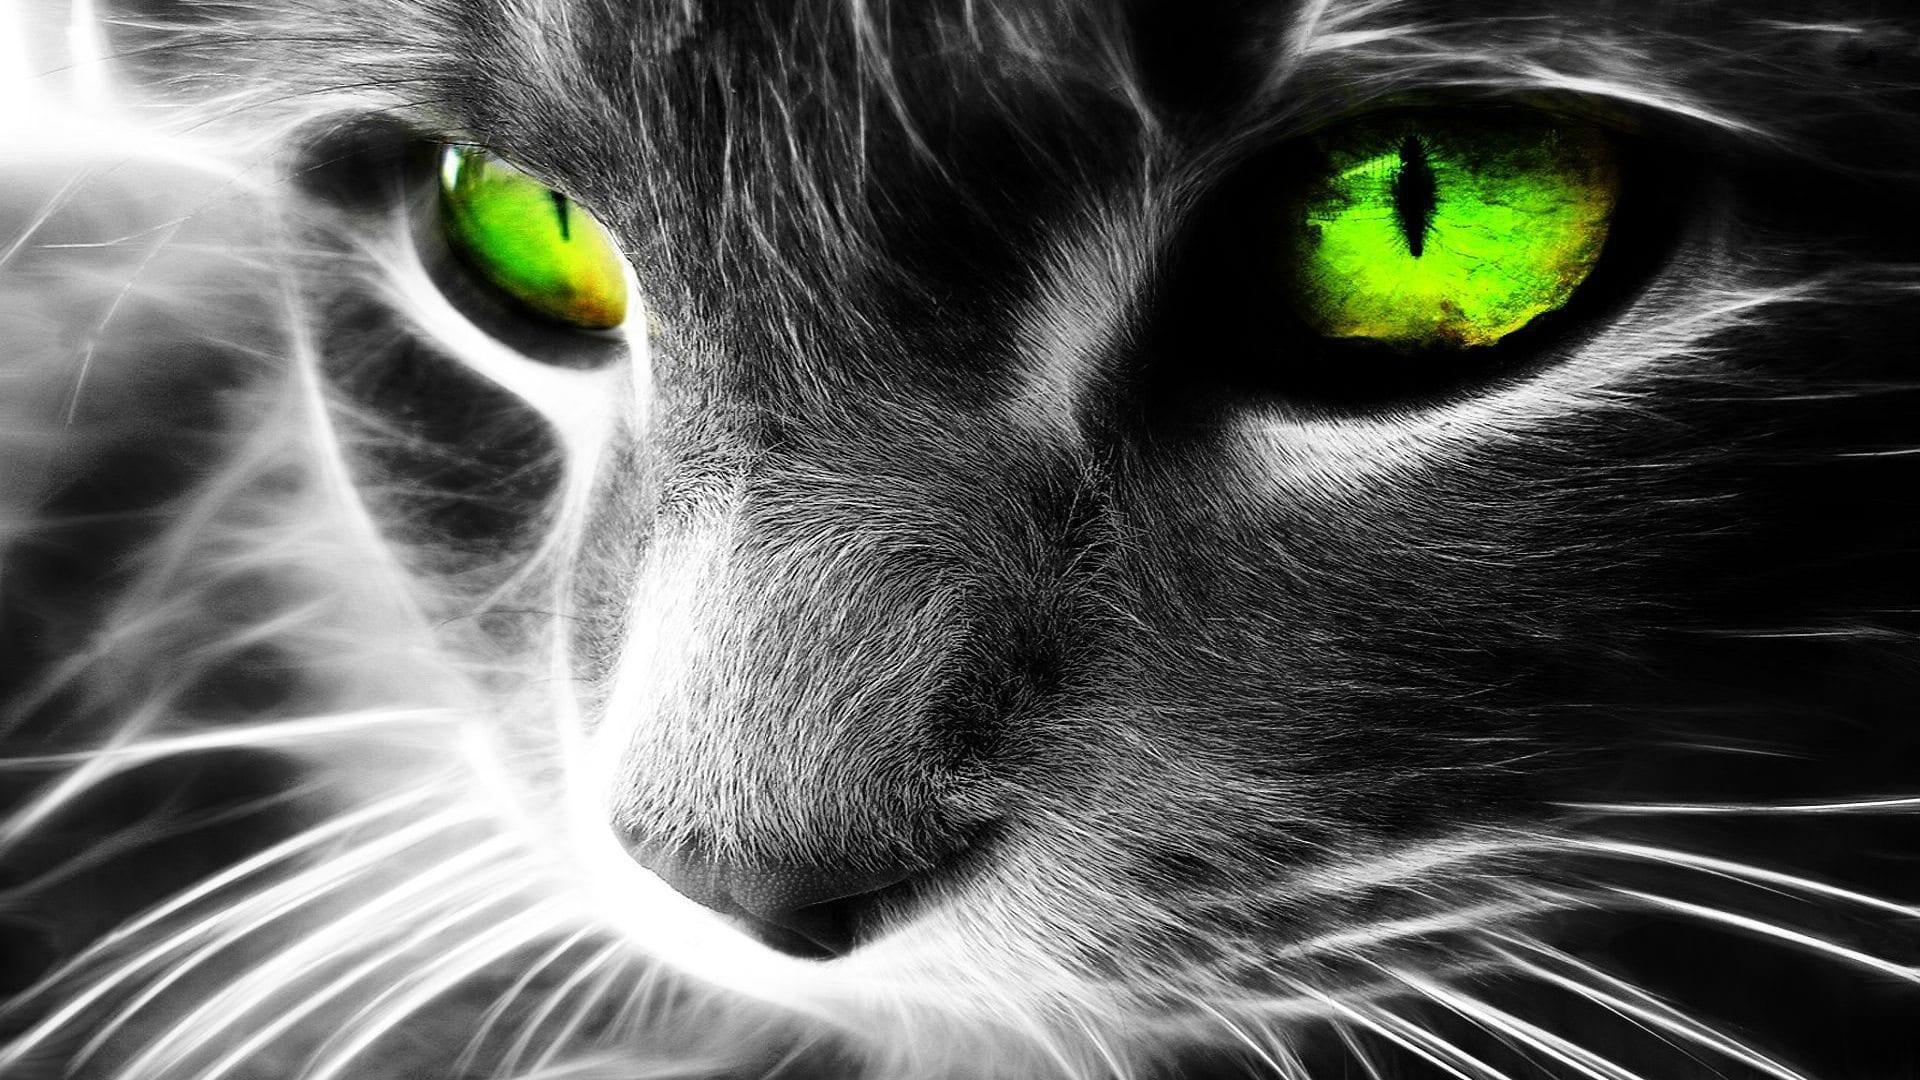 1080p-hd-wallpaper-animals-cats